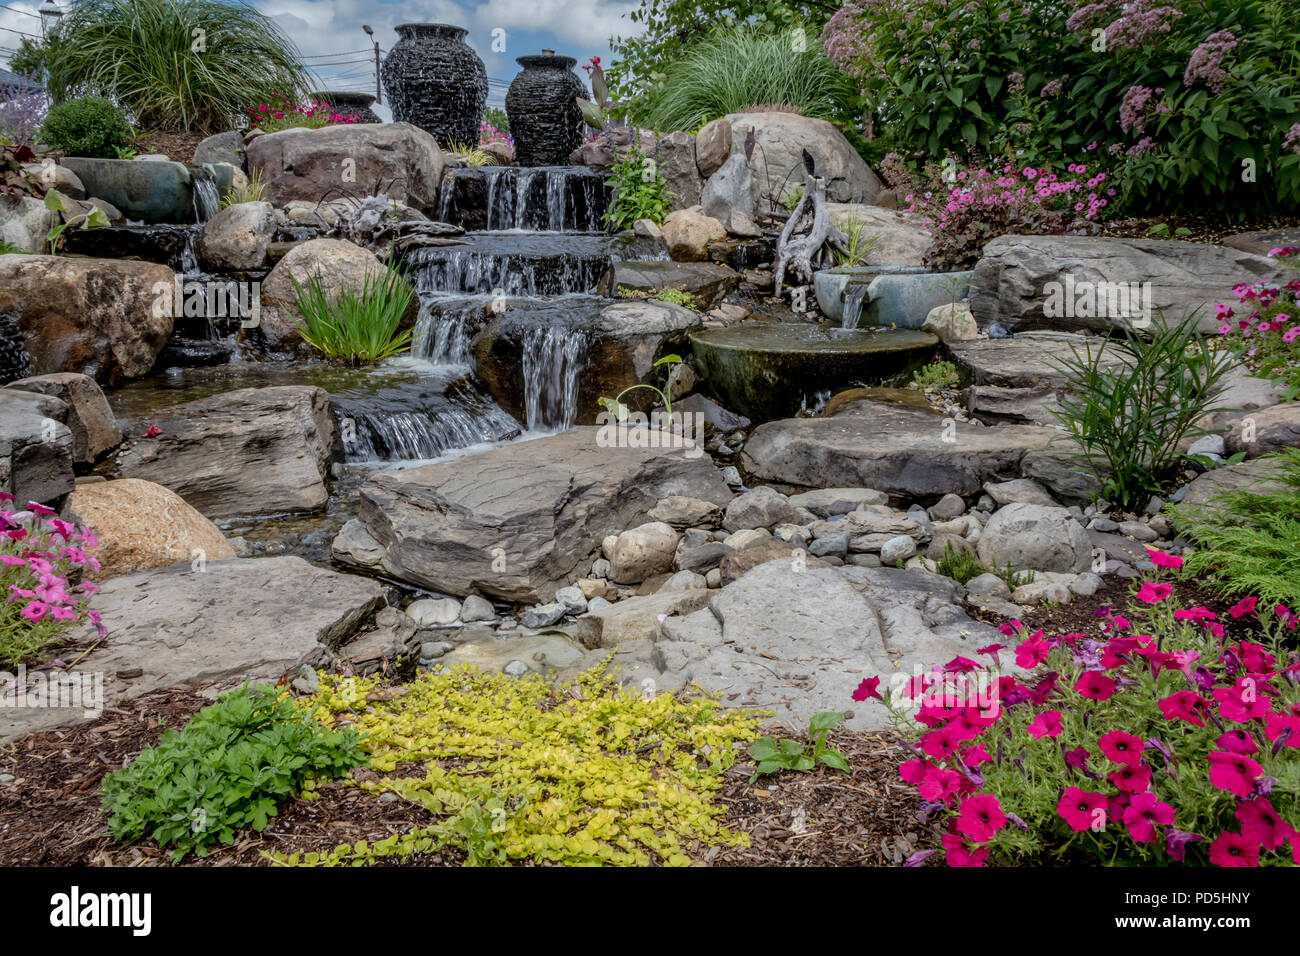 Landscape Architecture With Water Features For Summer Garden   Stock Image